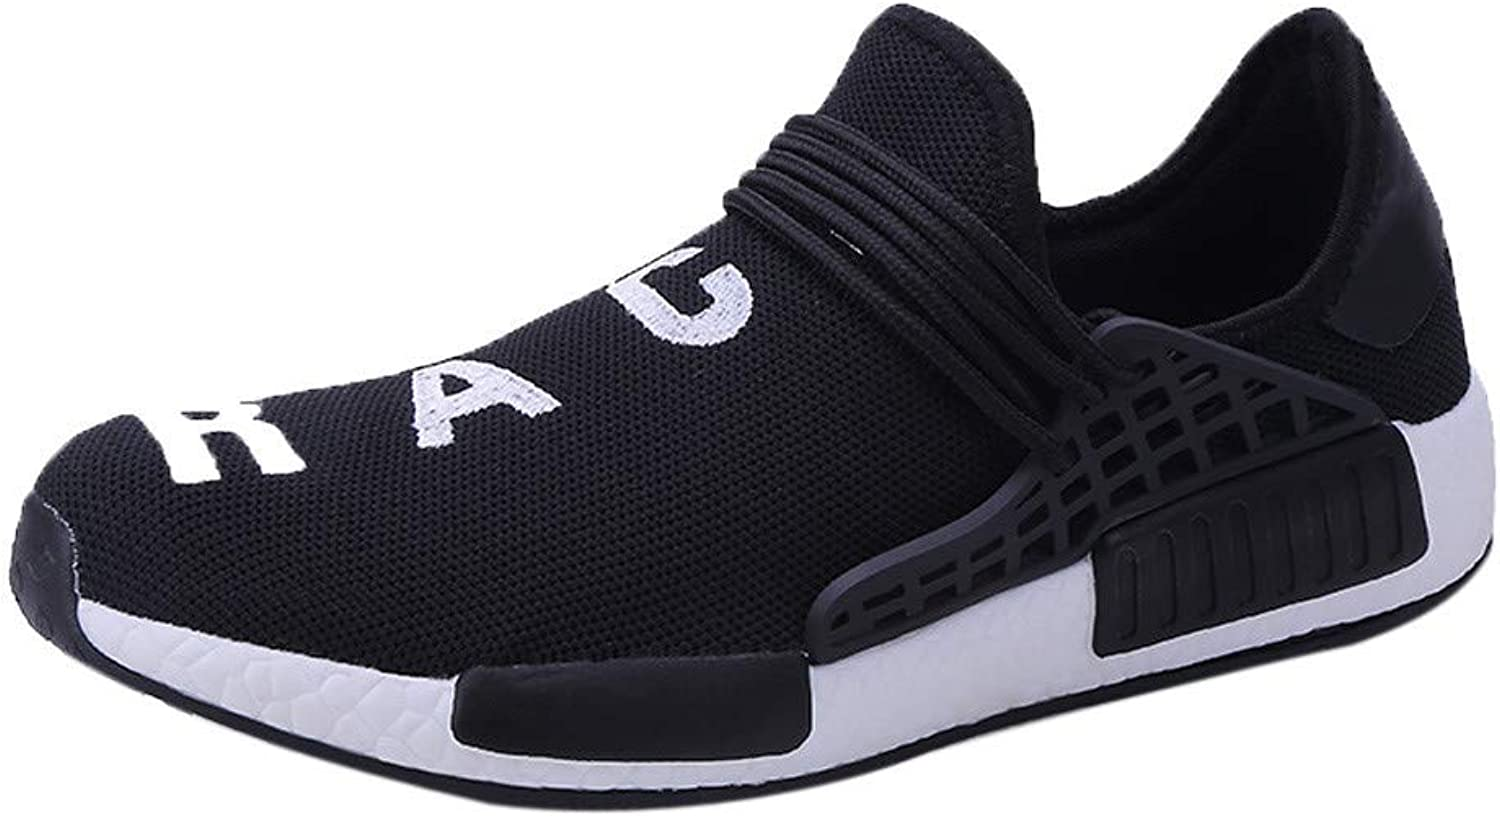 JaHGDU Womens Sneakers Fashion Casual Wear-Resistant Breathable Sports shoes Leisure Cosy Wild Tight Super Quality Black bluee for Womens